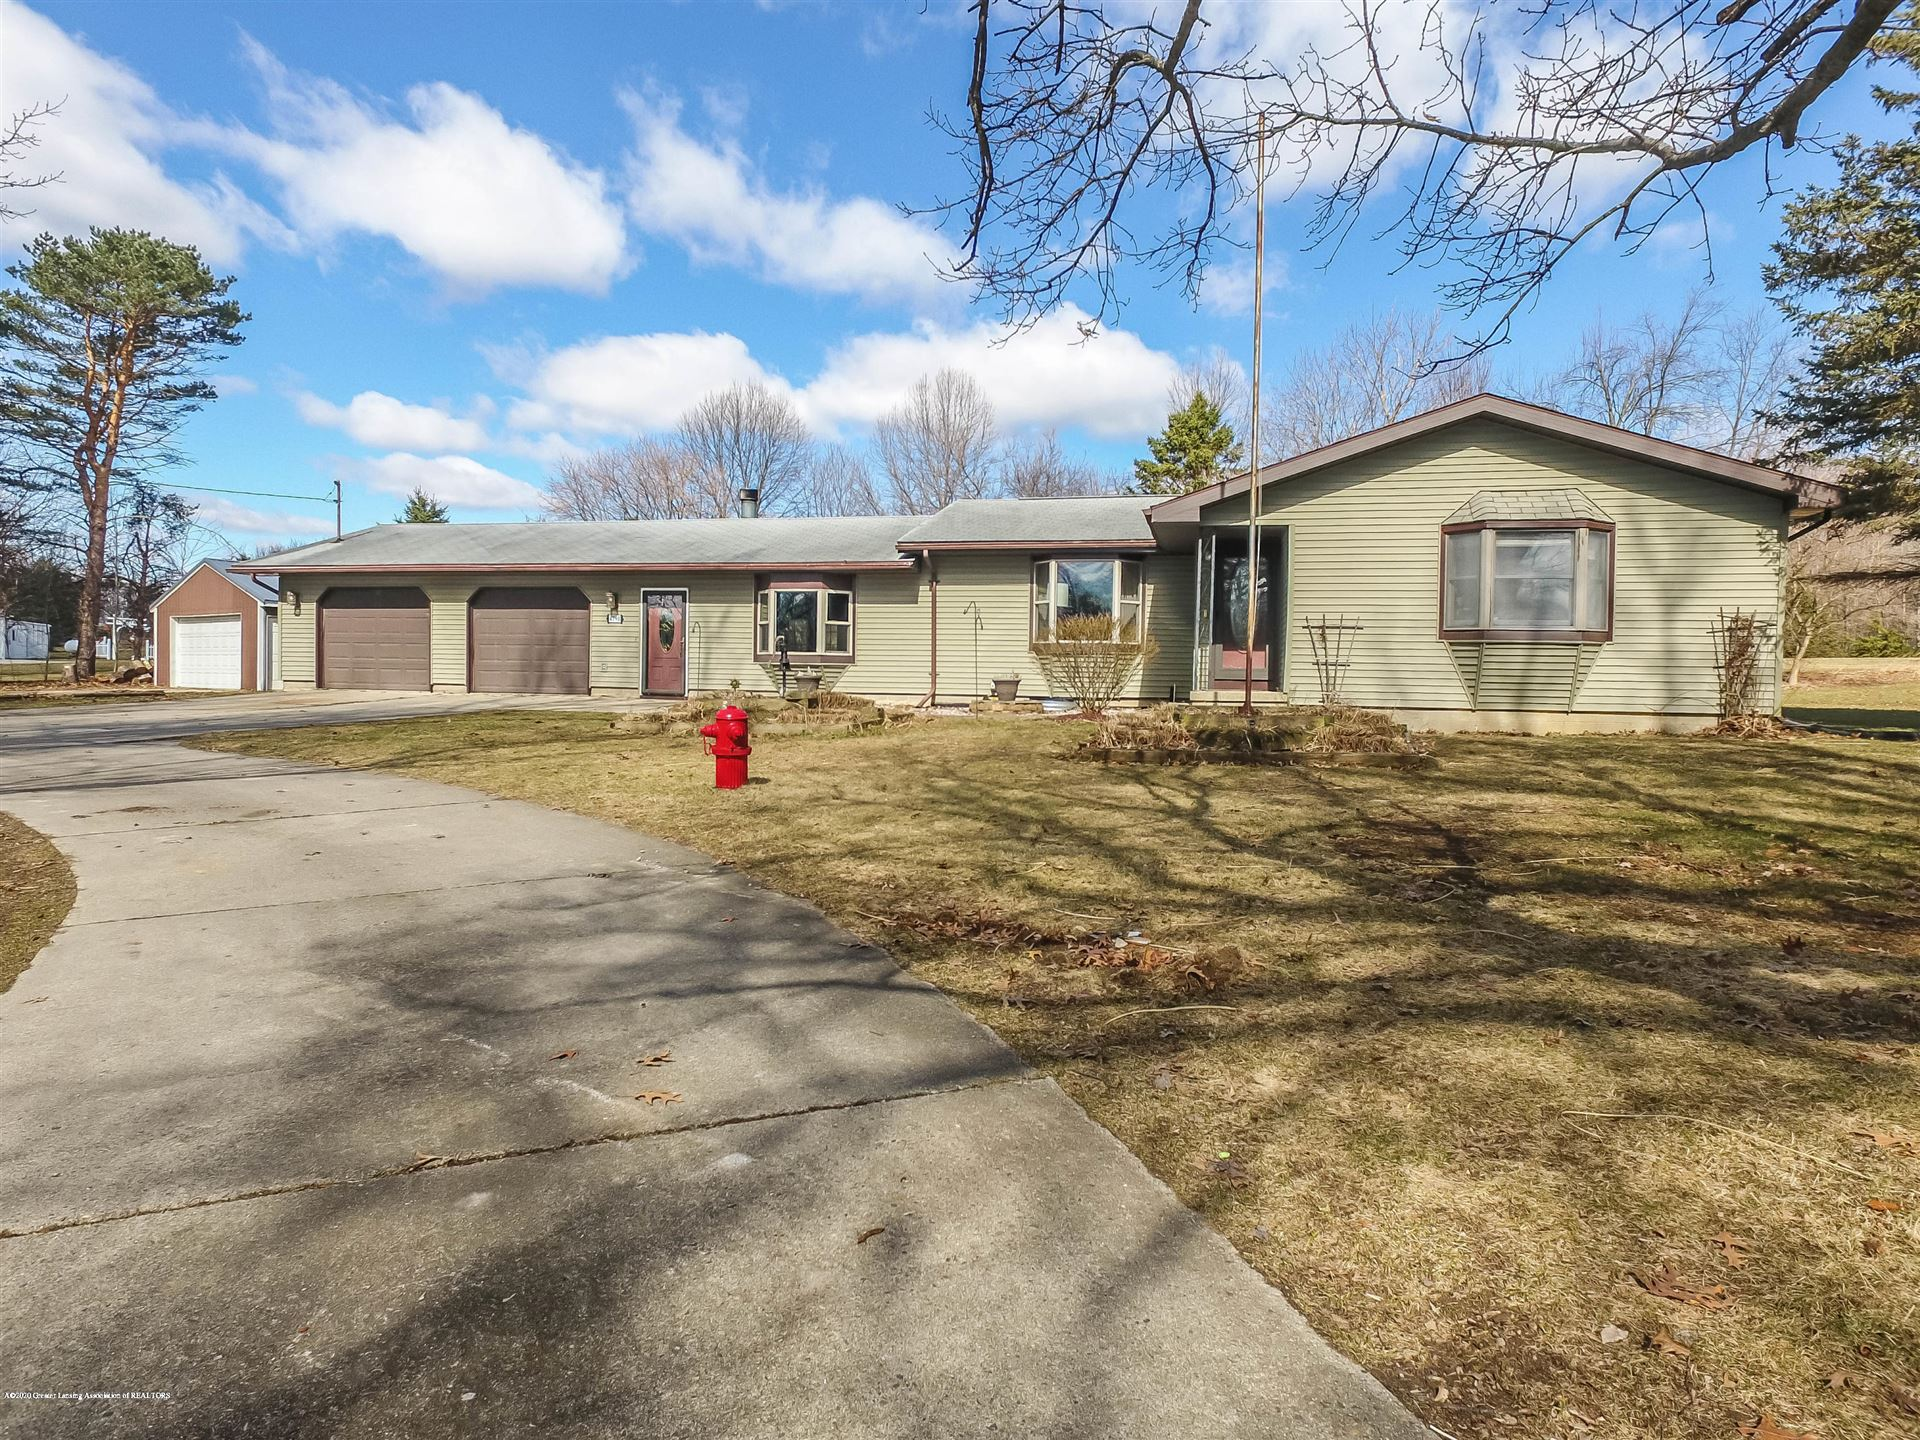 Photo of 4790 Grand River, Owosso, MI 48867 (MLS # 244732)